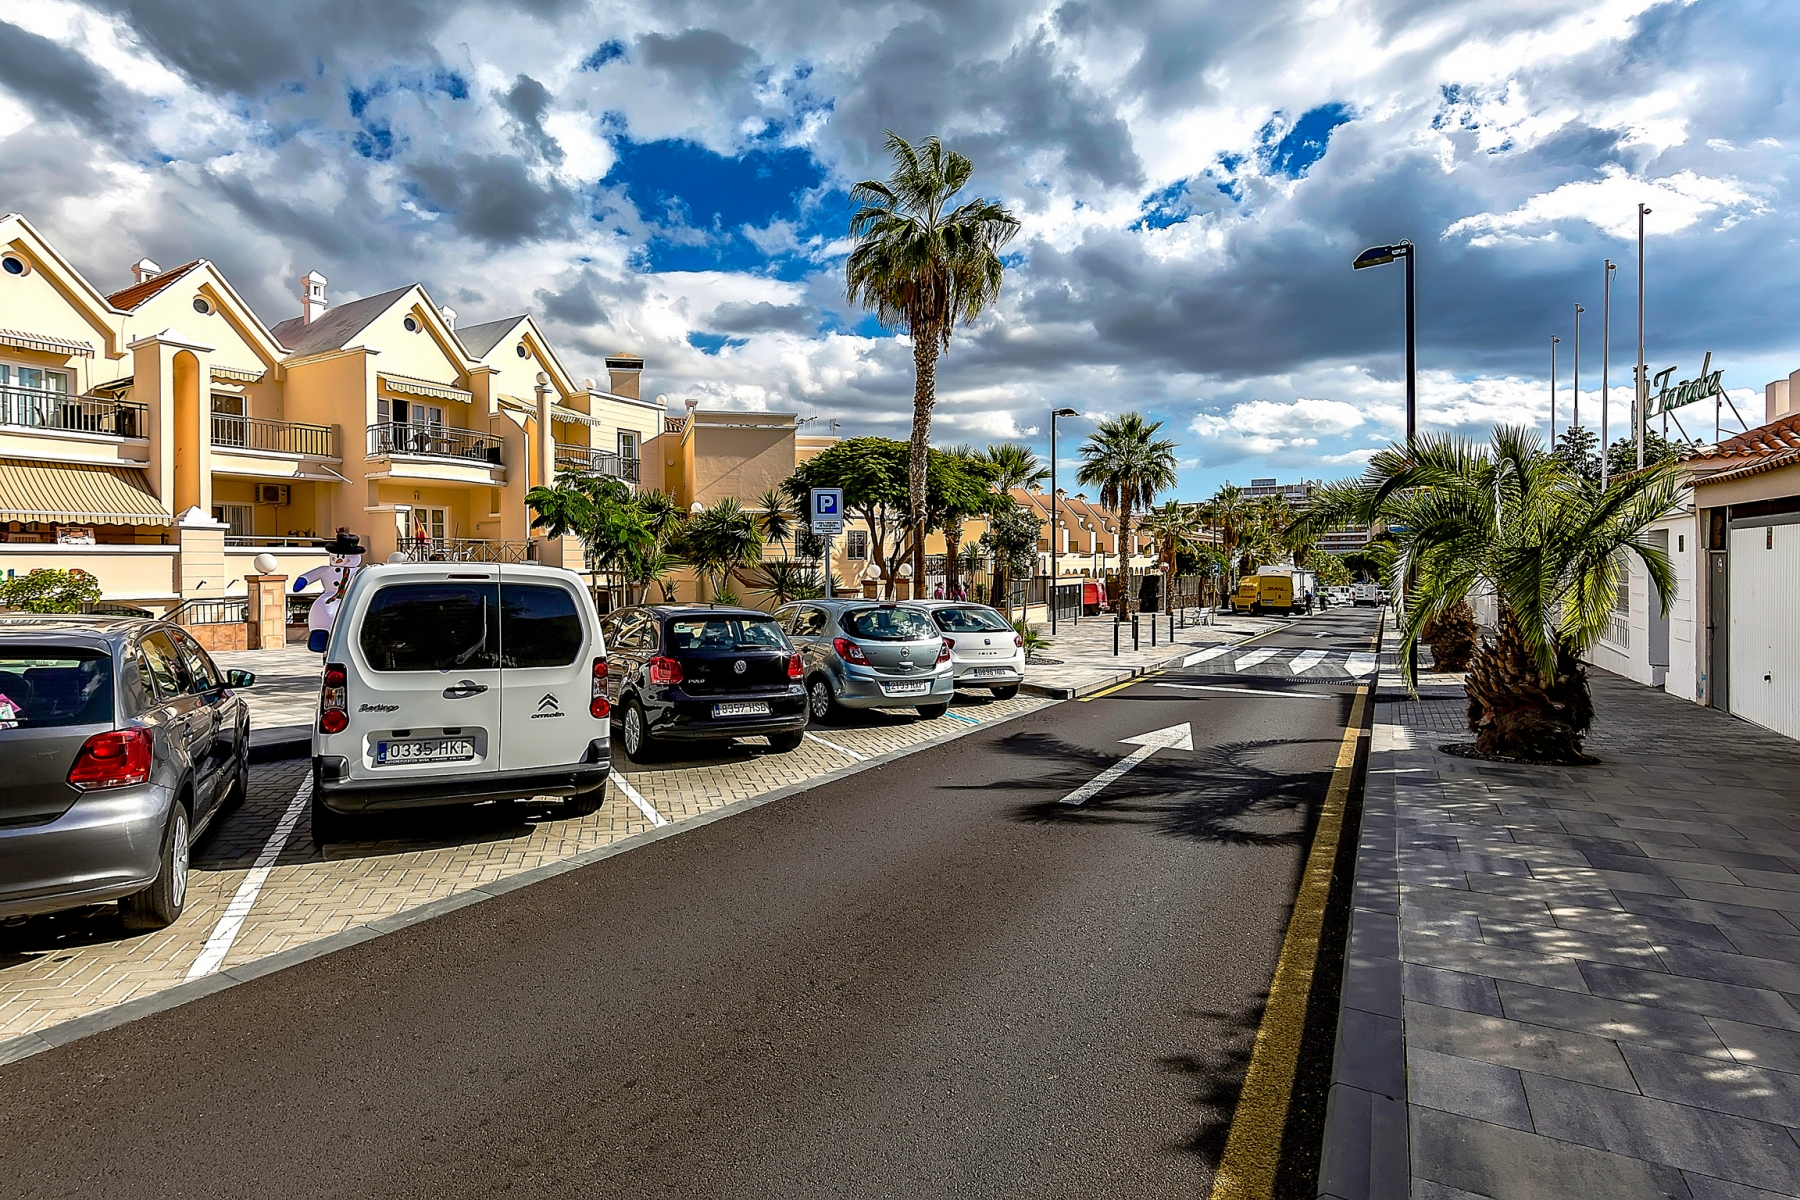 Properties for Sale in Tenerife, Canary Islands, Spain | SylkWayStar Real Estate. 1 bedroom apartment Yucca Park. Image-22553